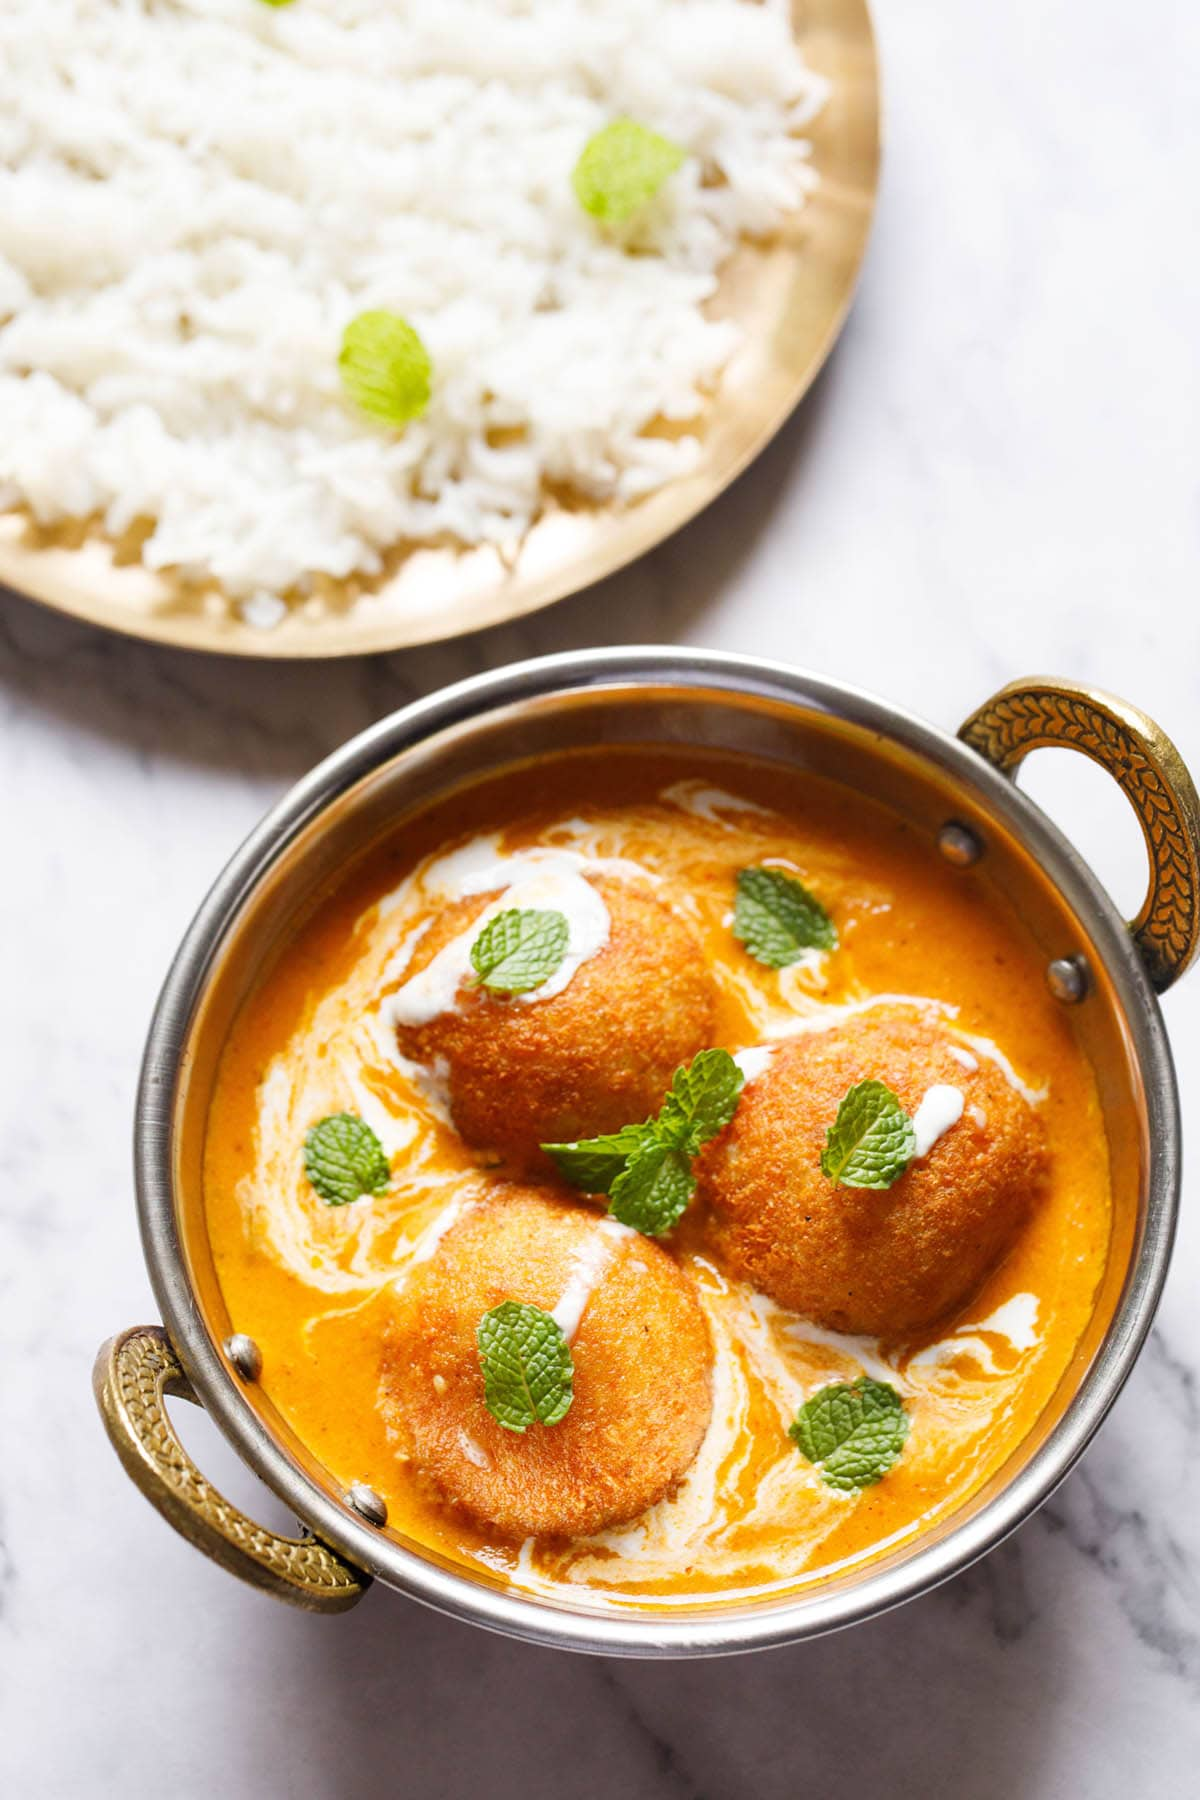 top shot of 3 malai kofta with mint leaves on top in a silver serving dish with handles on a white marble